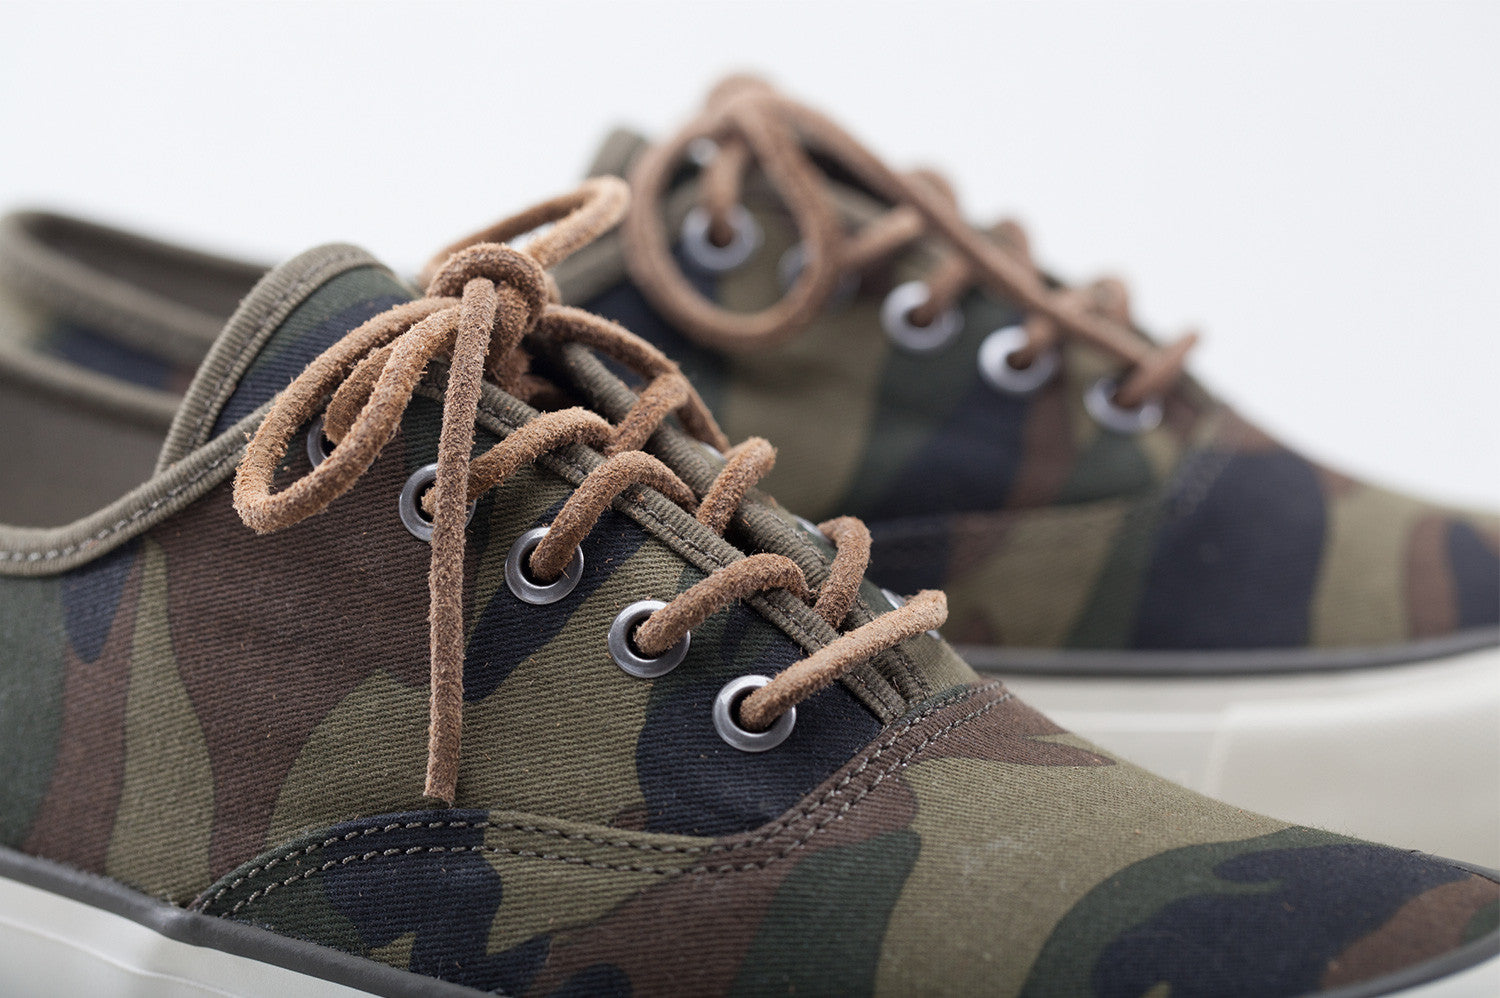 0664M_legend_sneaker_camo_olive_canvas_dtl